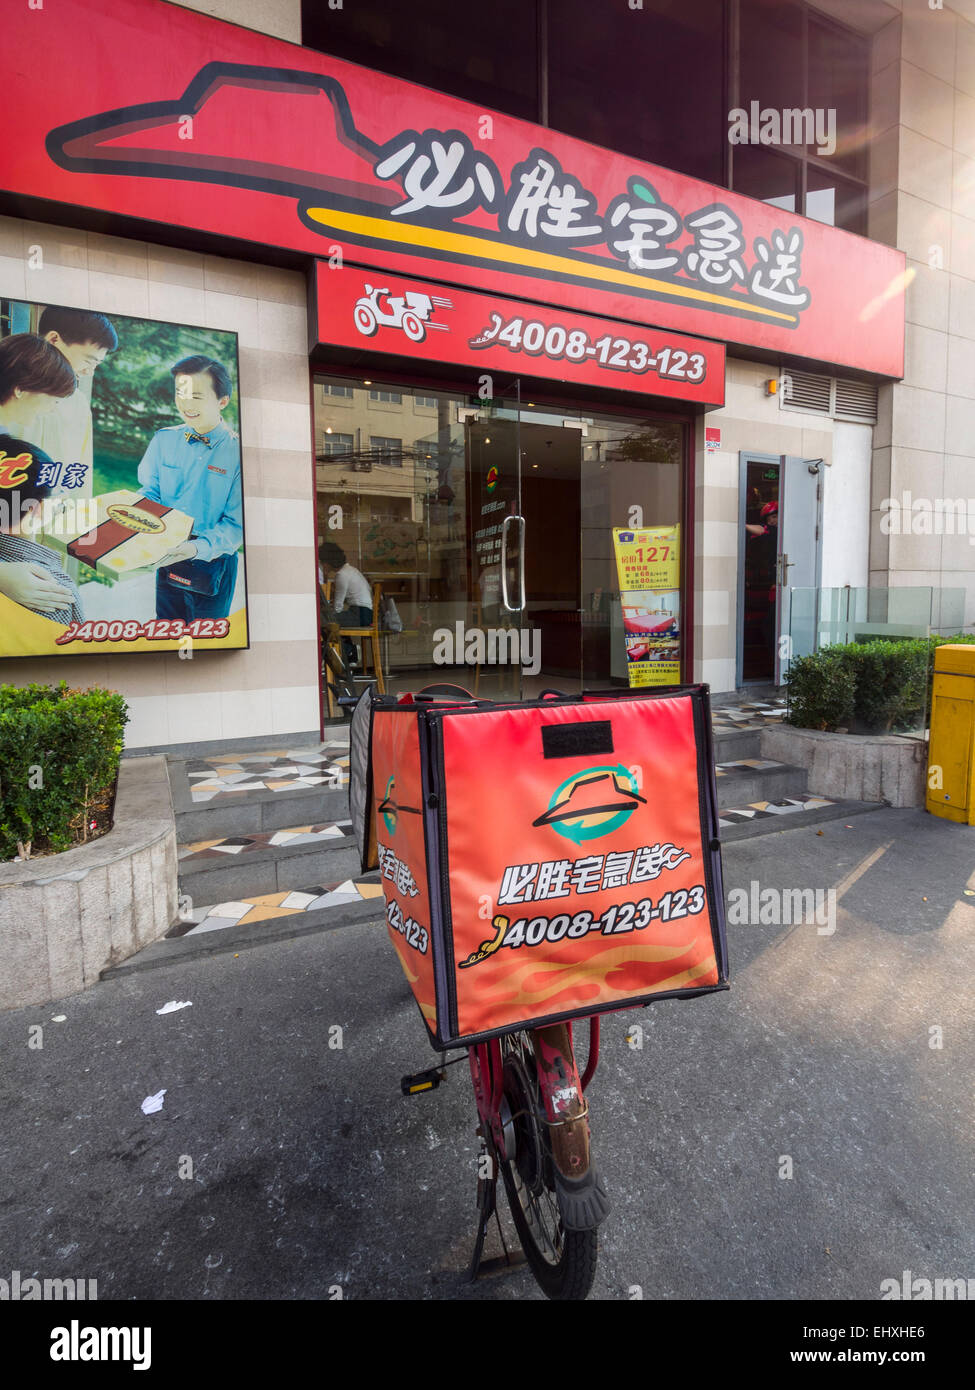 Delivery Motorcycle Outside A Pizza Hut Restaurant In Shanghai